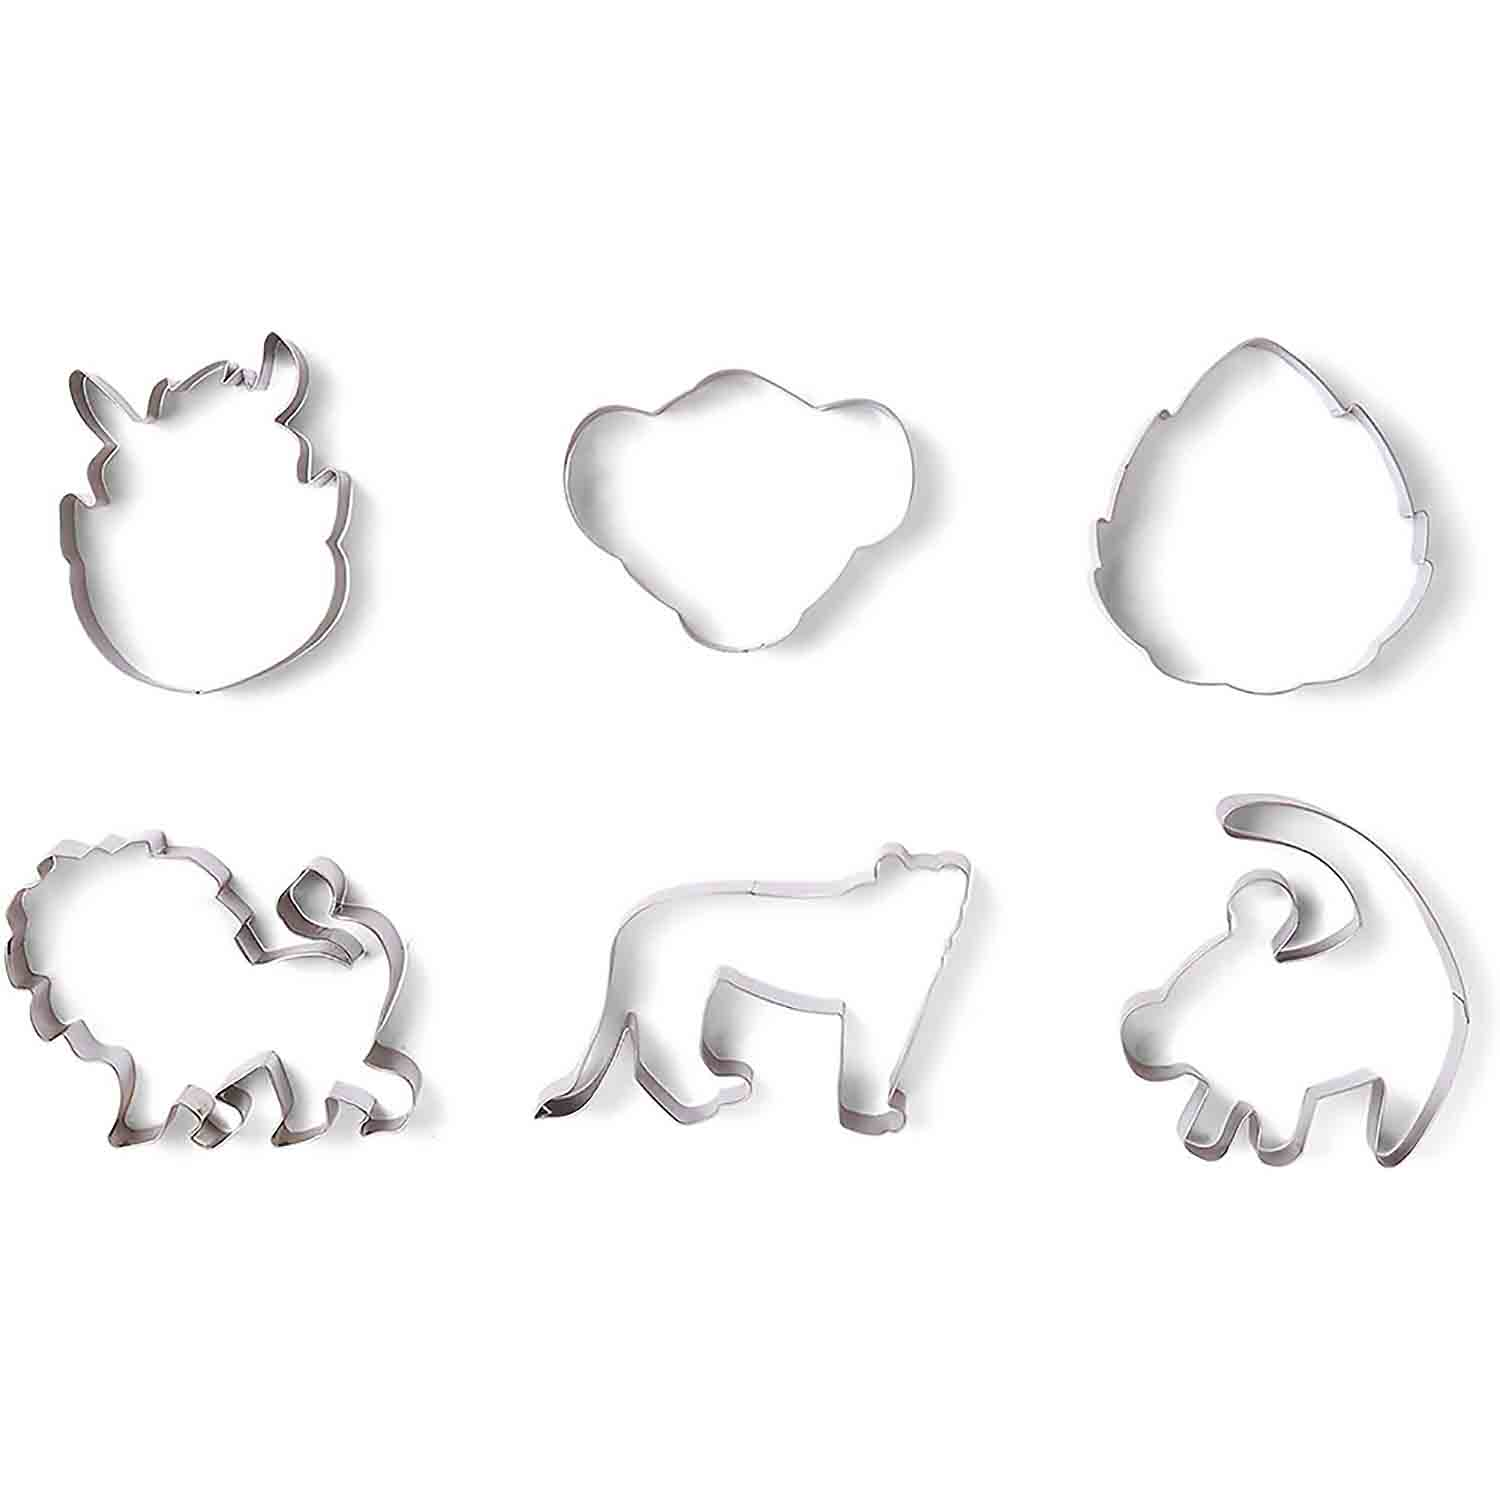 King of Savanna Cookie Cutter Set